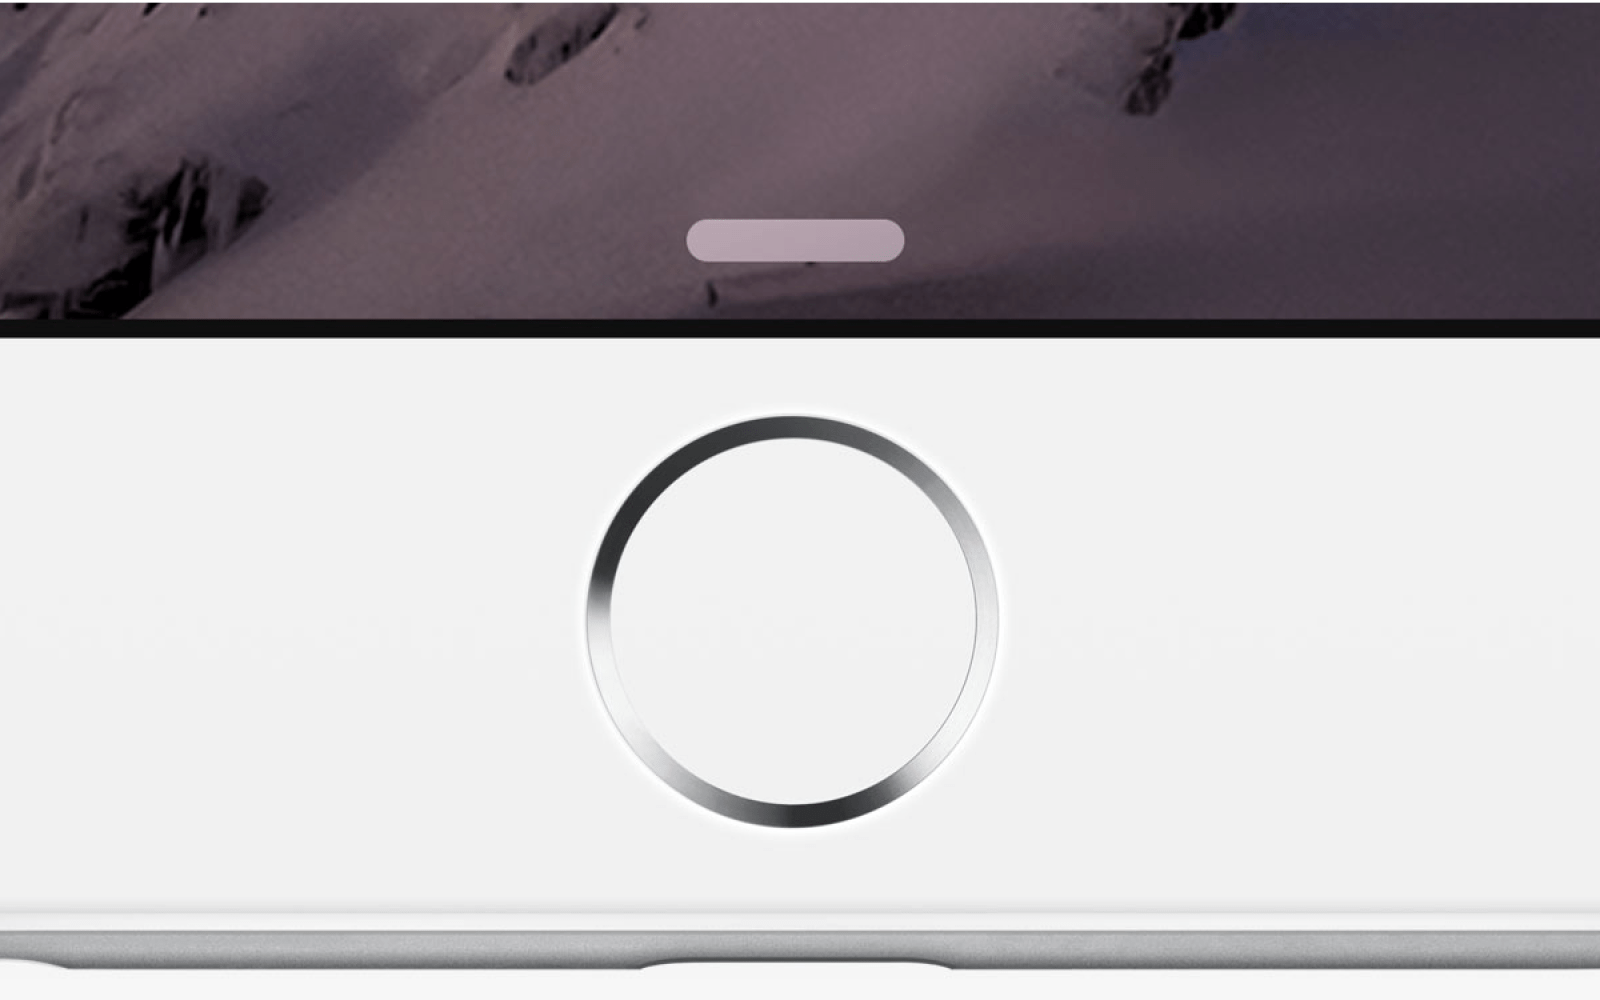 Rumor says Touch ID coming to MacBooks and Magic Mouse/Trackpad for Apple Pay, but there are roadblocks